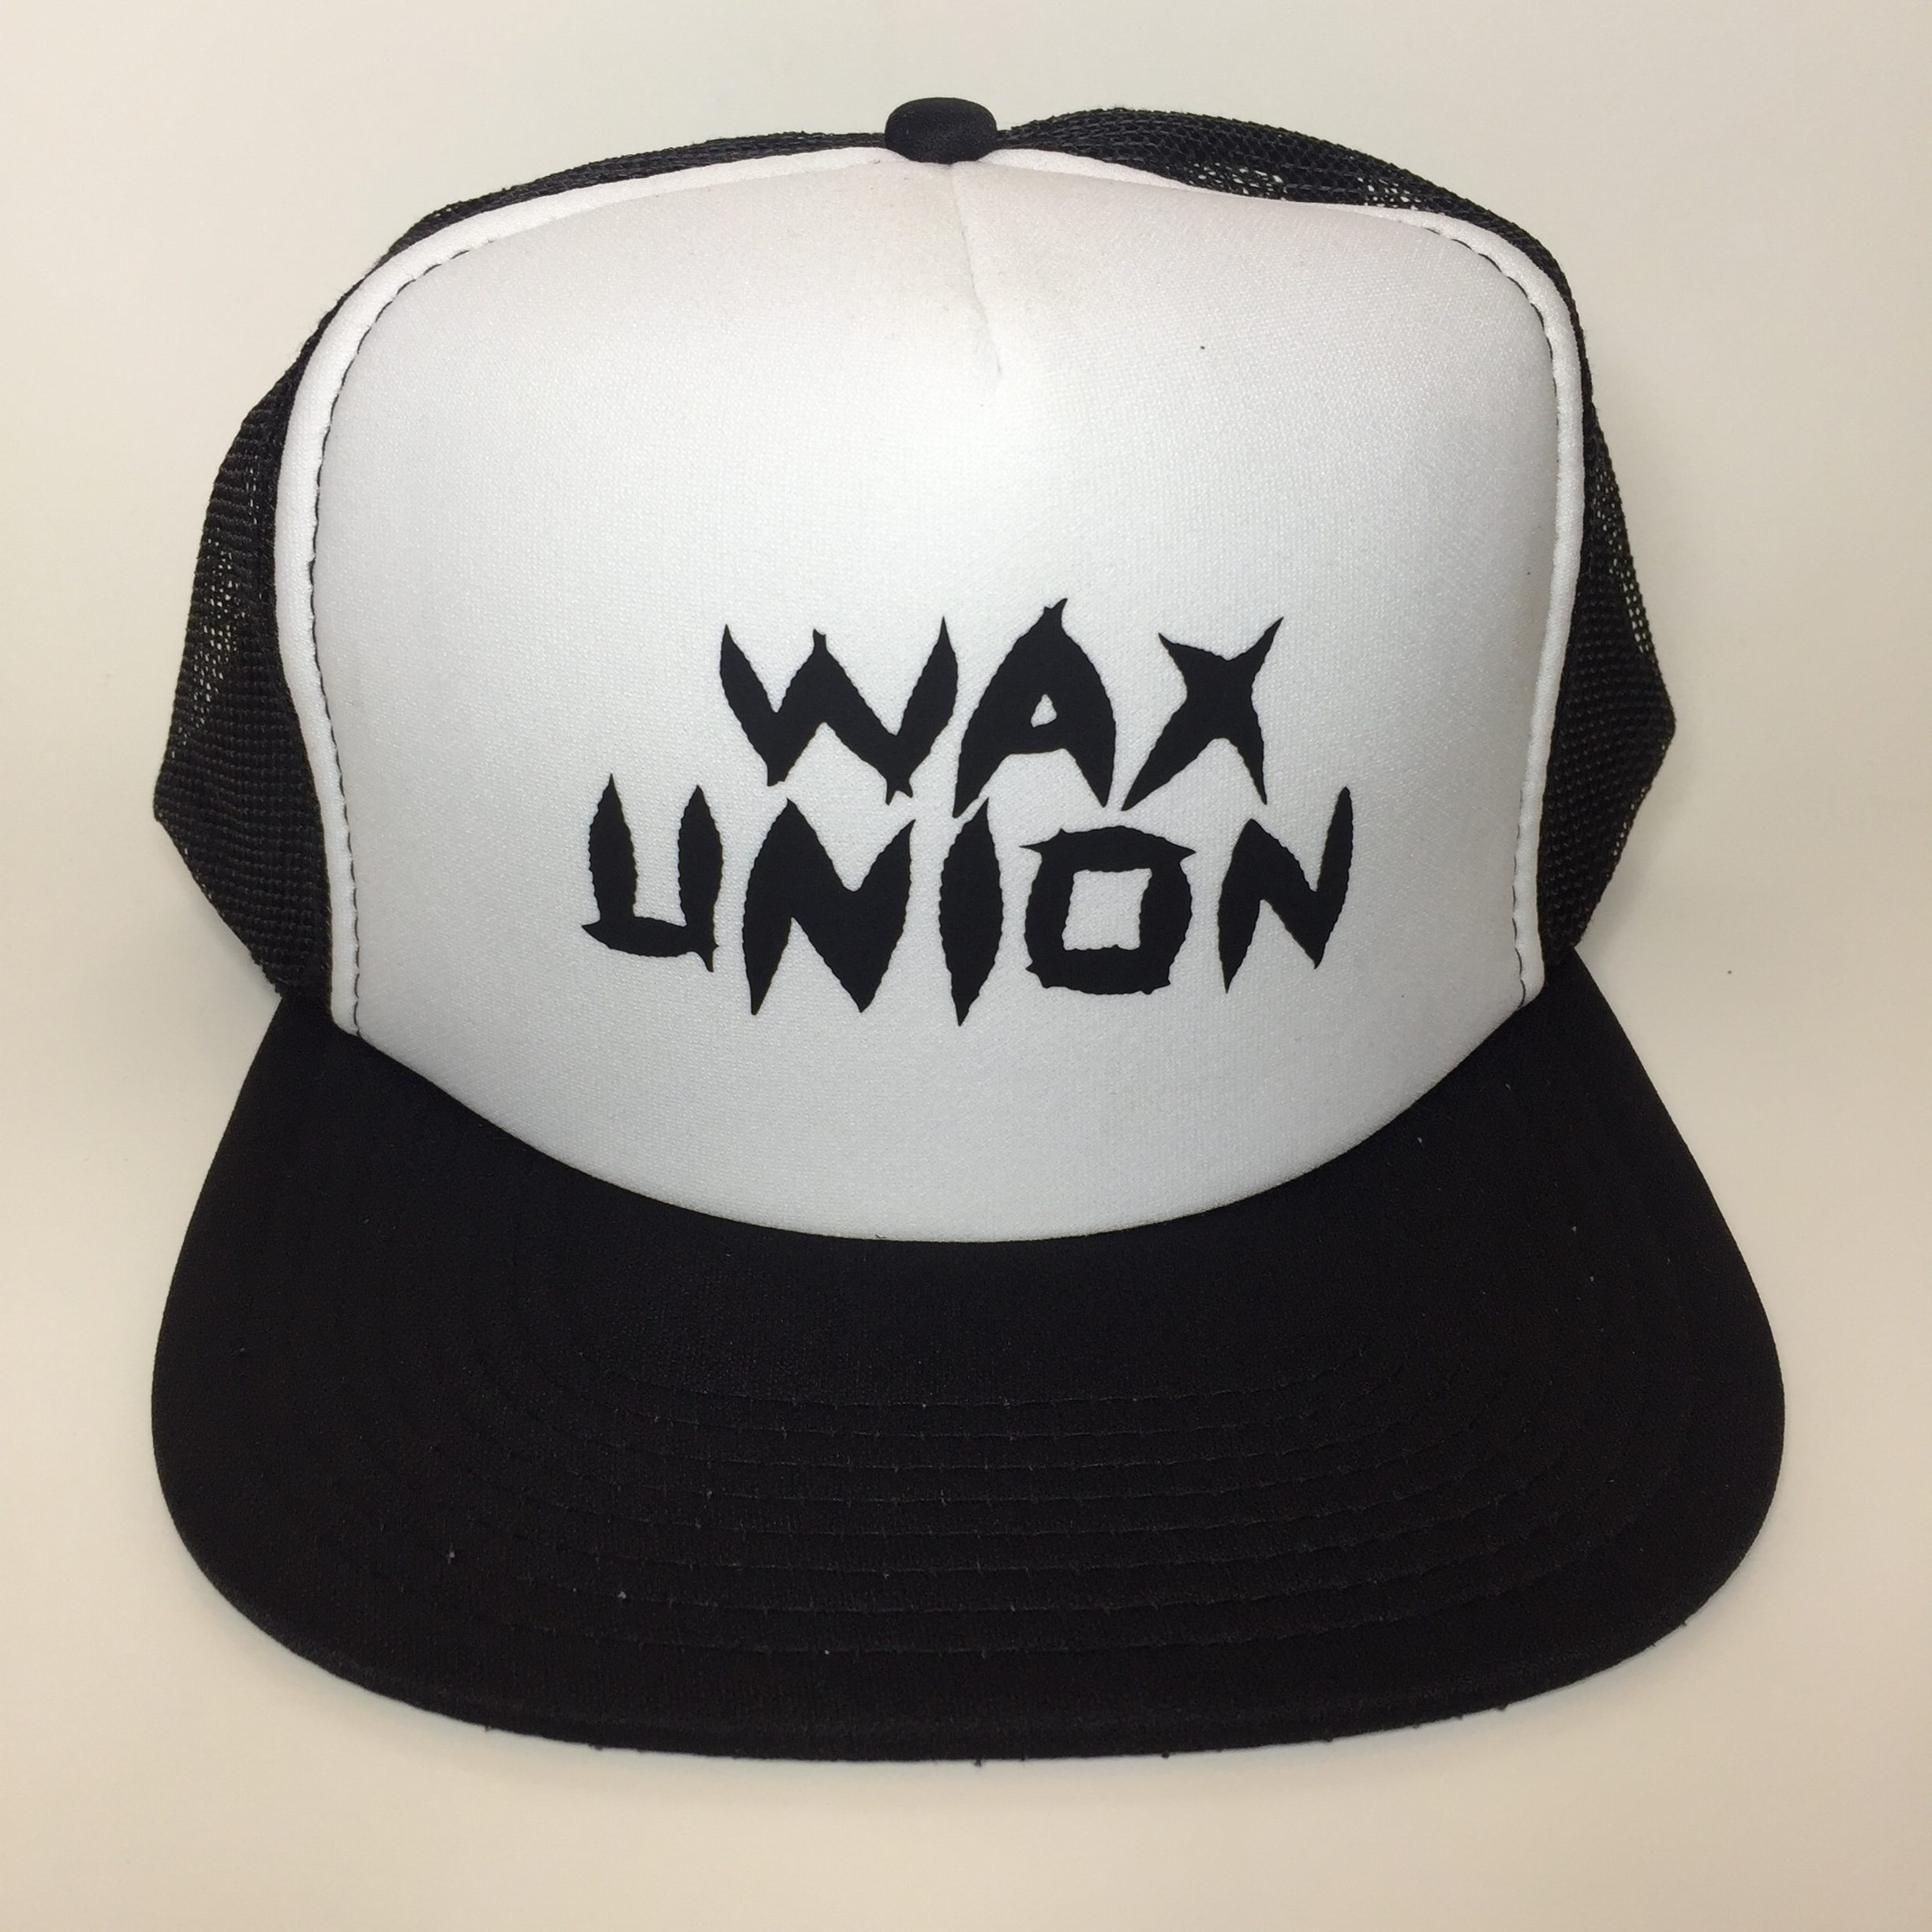 Wax Union Leaf Text Trucker Hat Black and White Front View